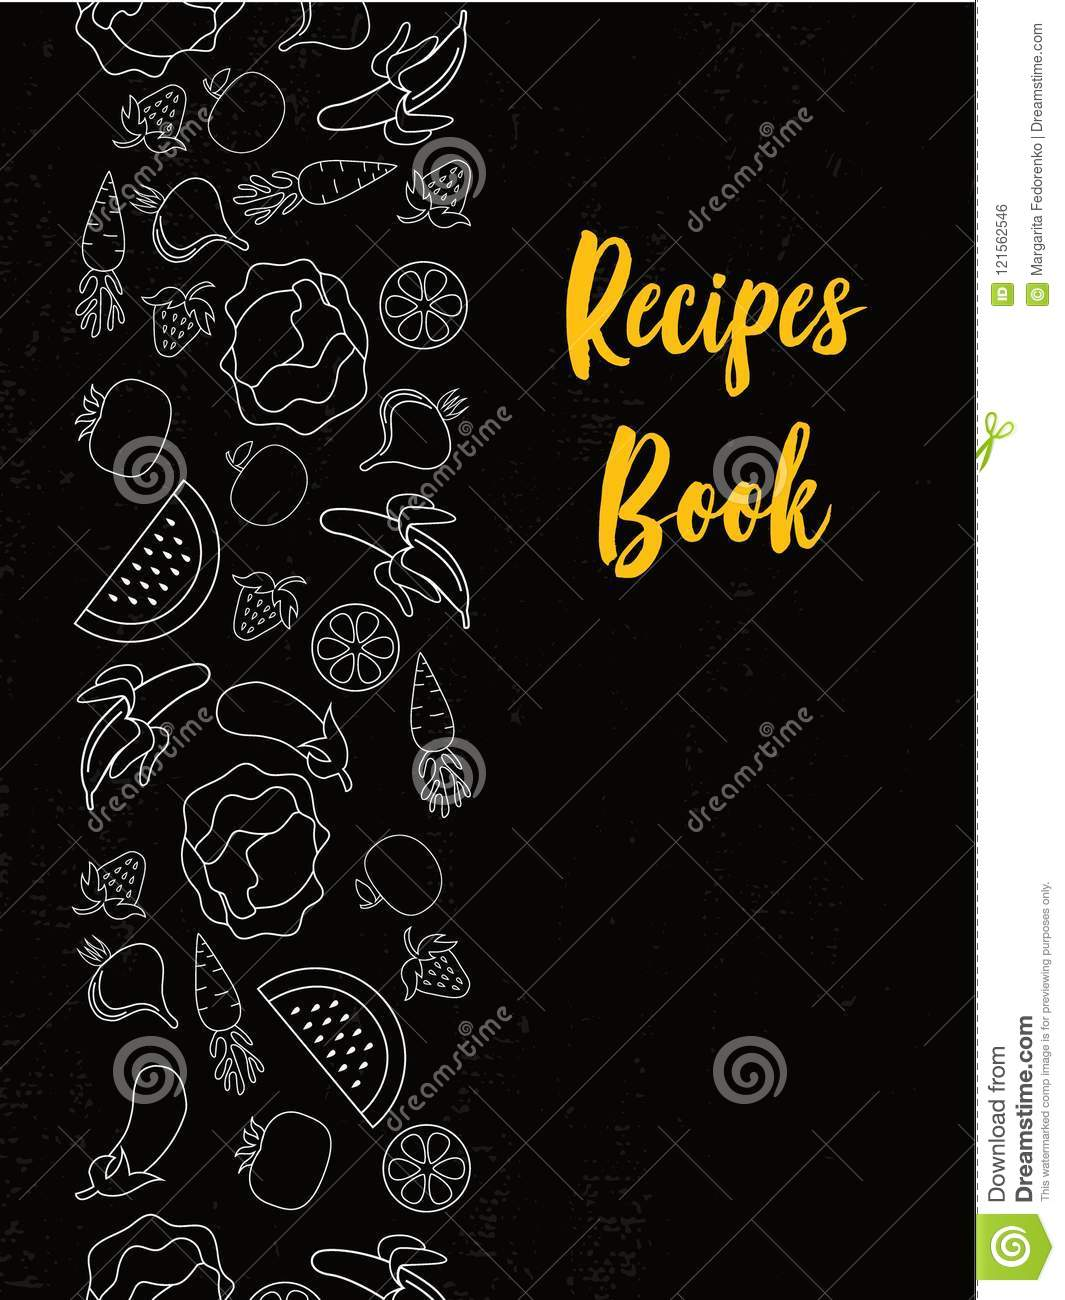 Typographic Book Cover Vector : Recipes book cover typography poster template stock vector